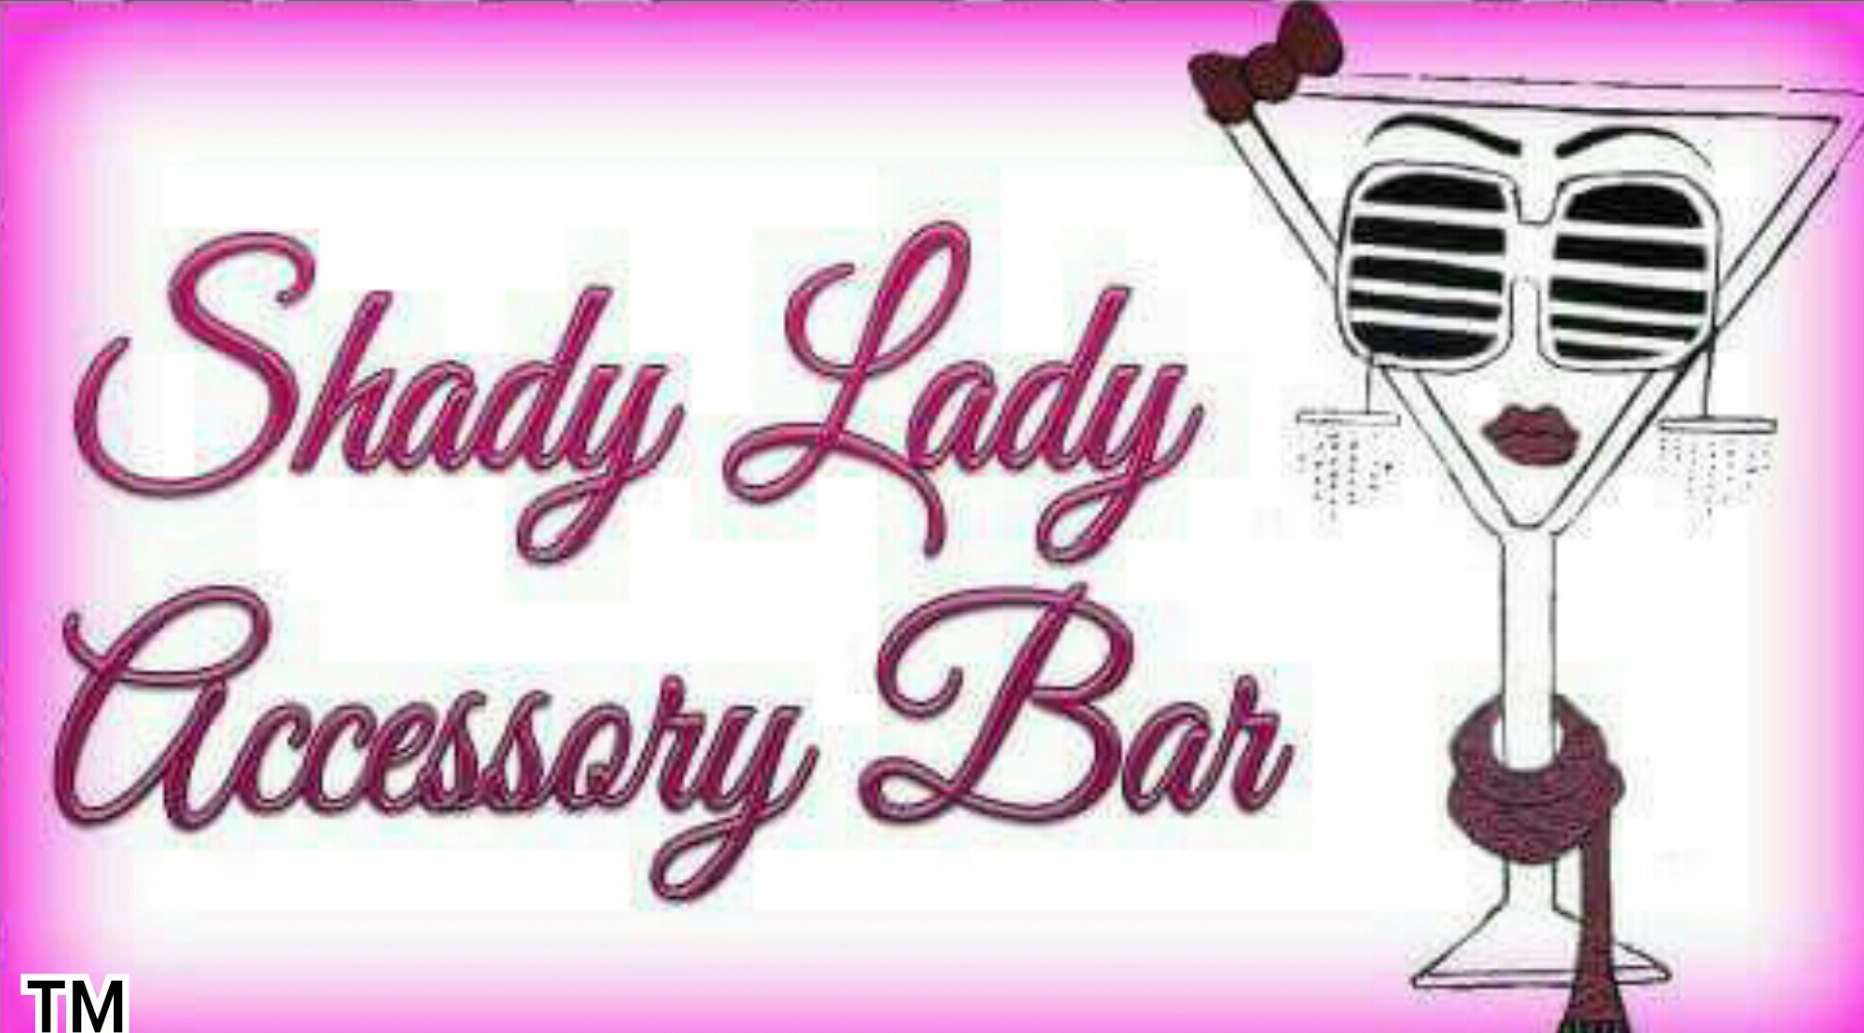 Shady Lady Accessory Bar